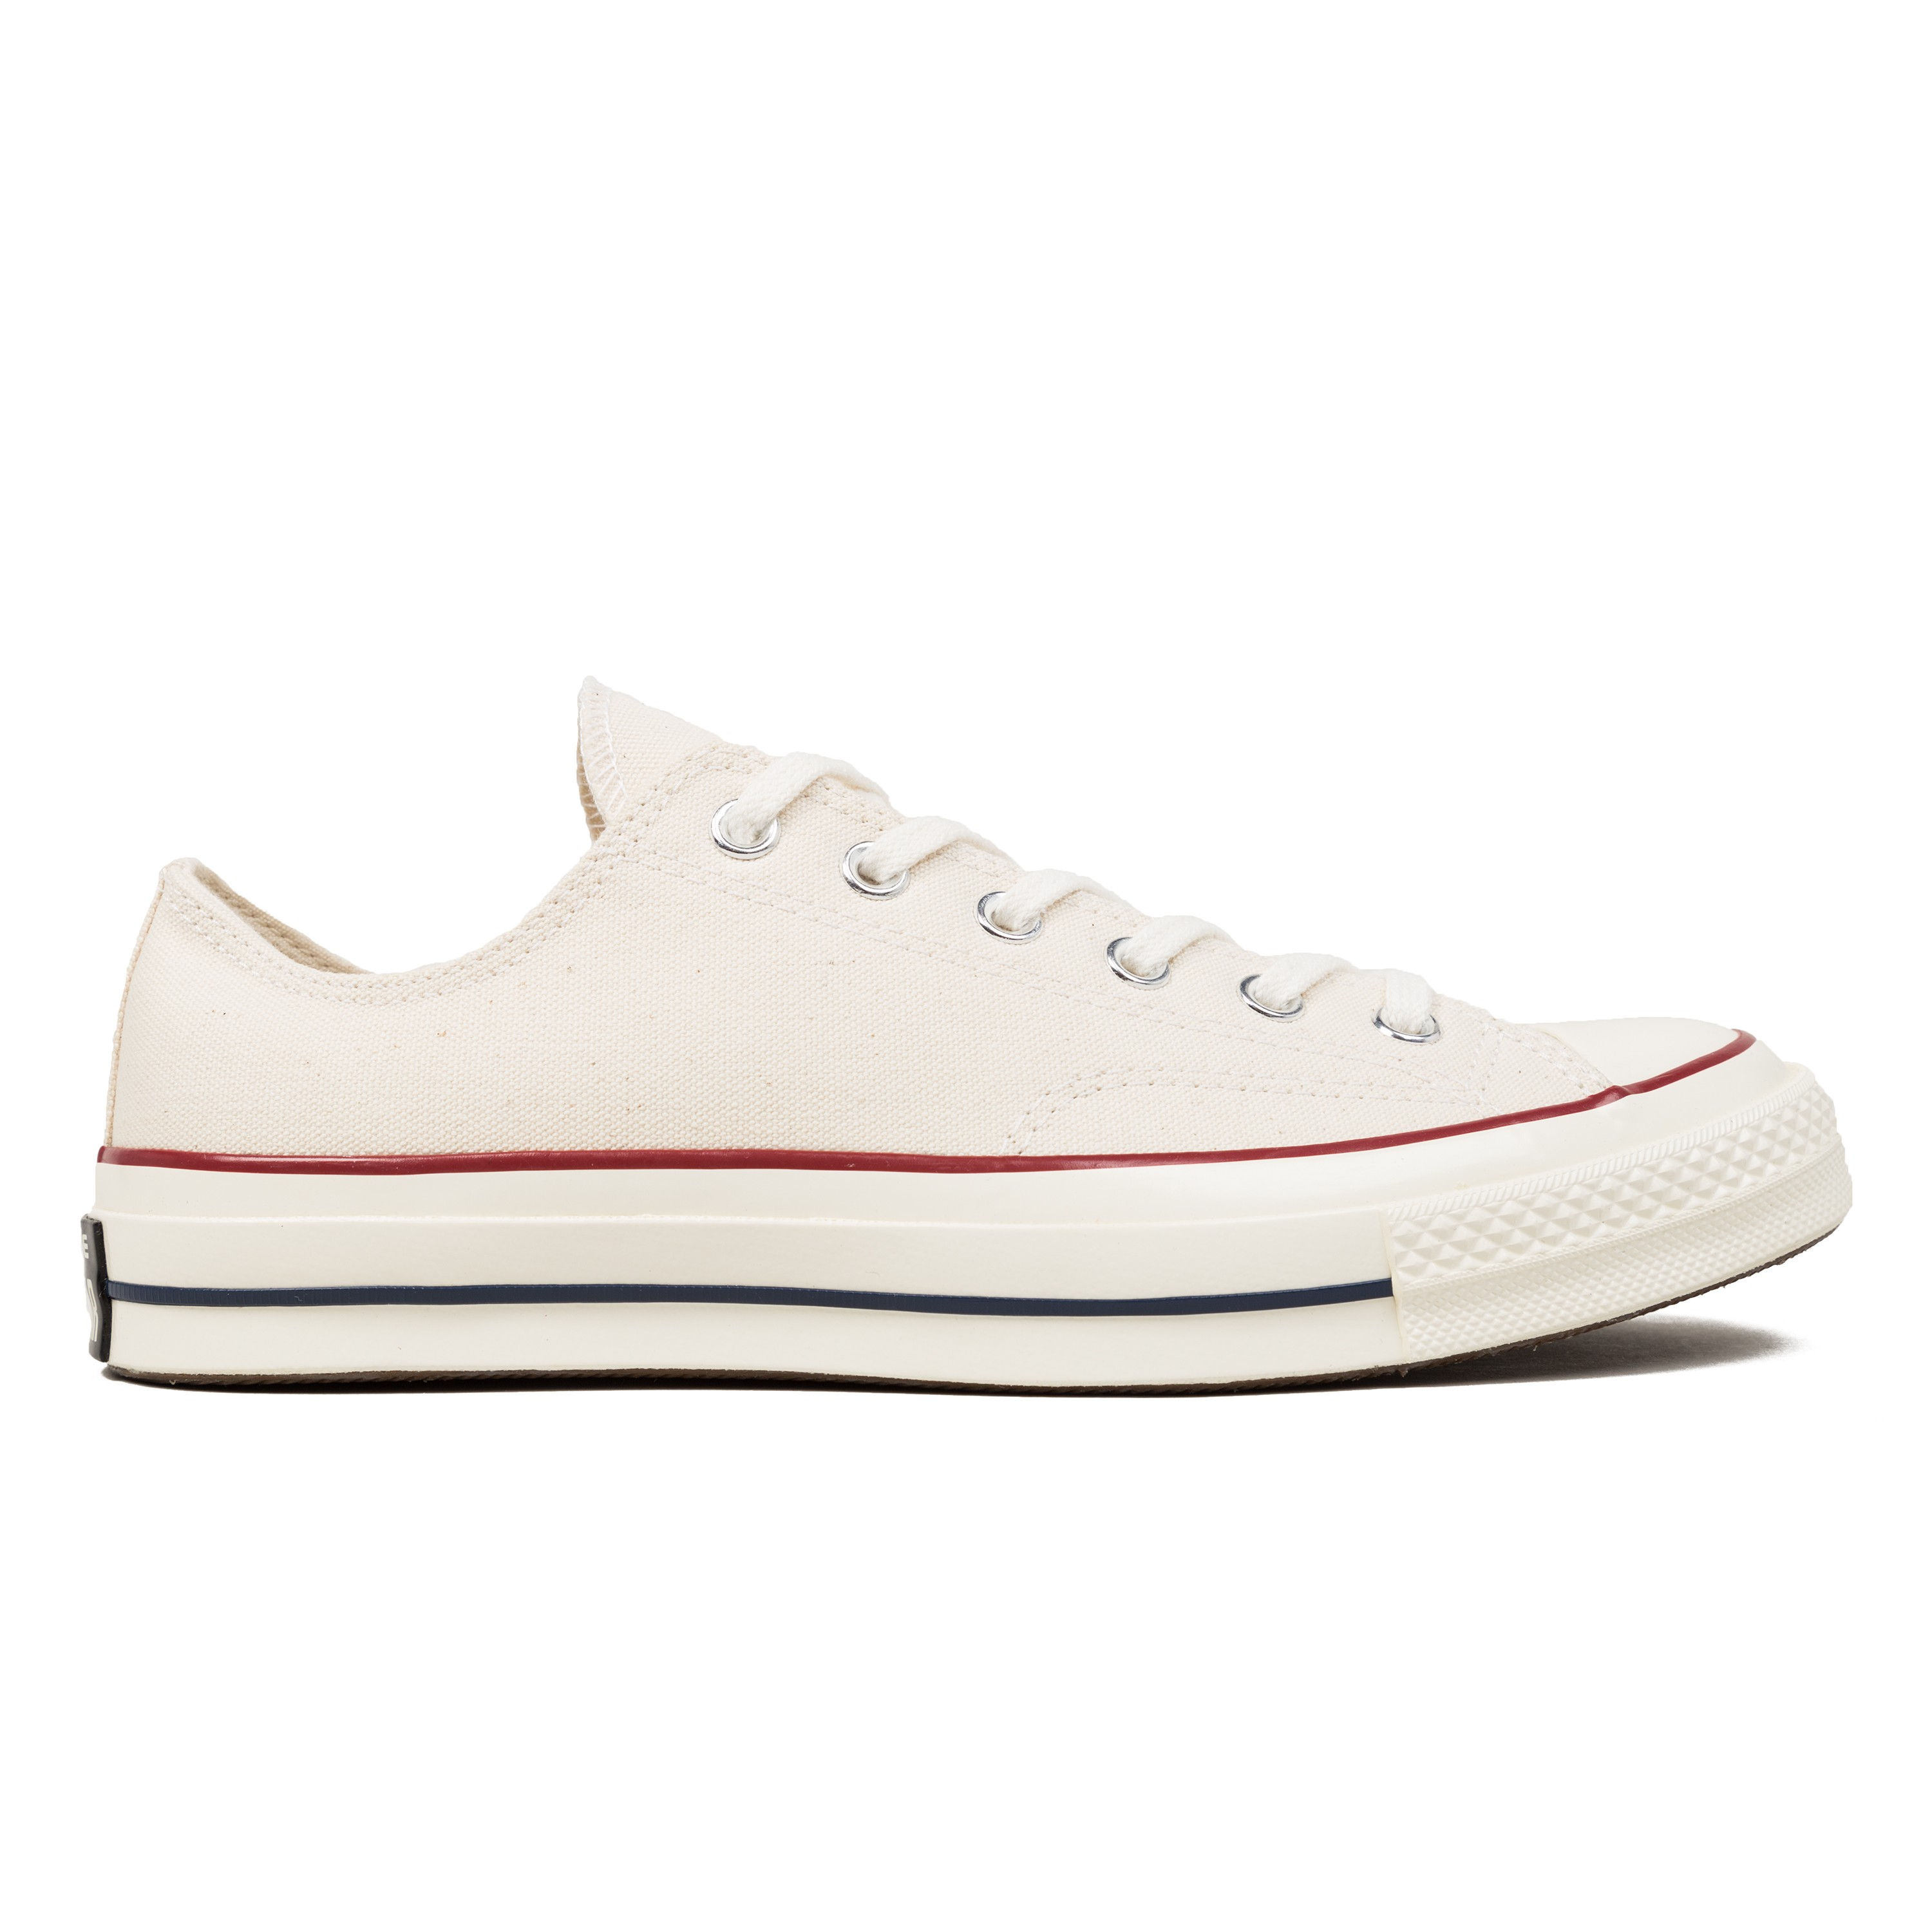 98bed43b251f Converse All Star Chuck Taylor 70 OX (Parchment) - Consortium.